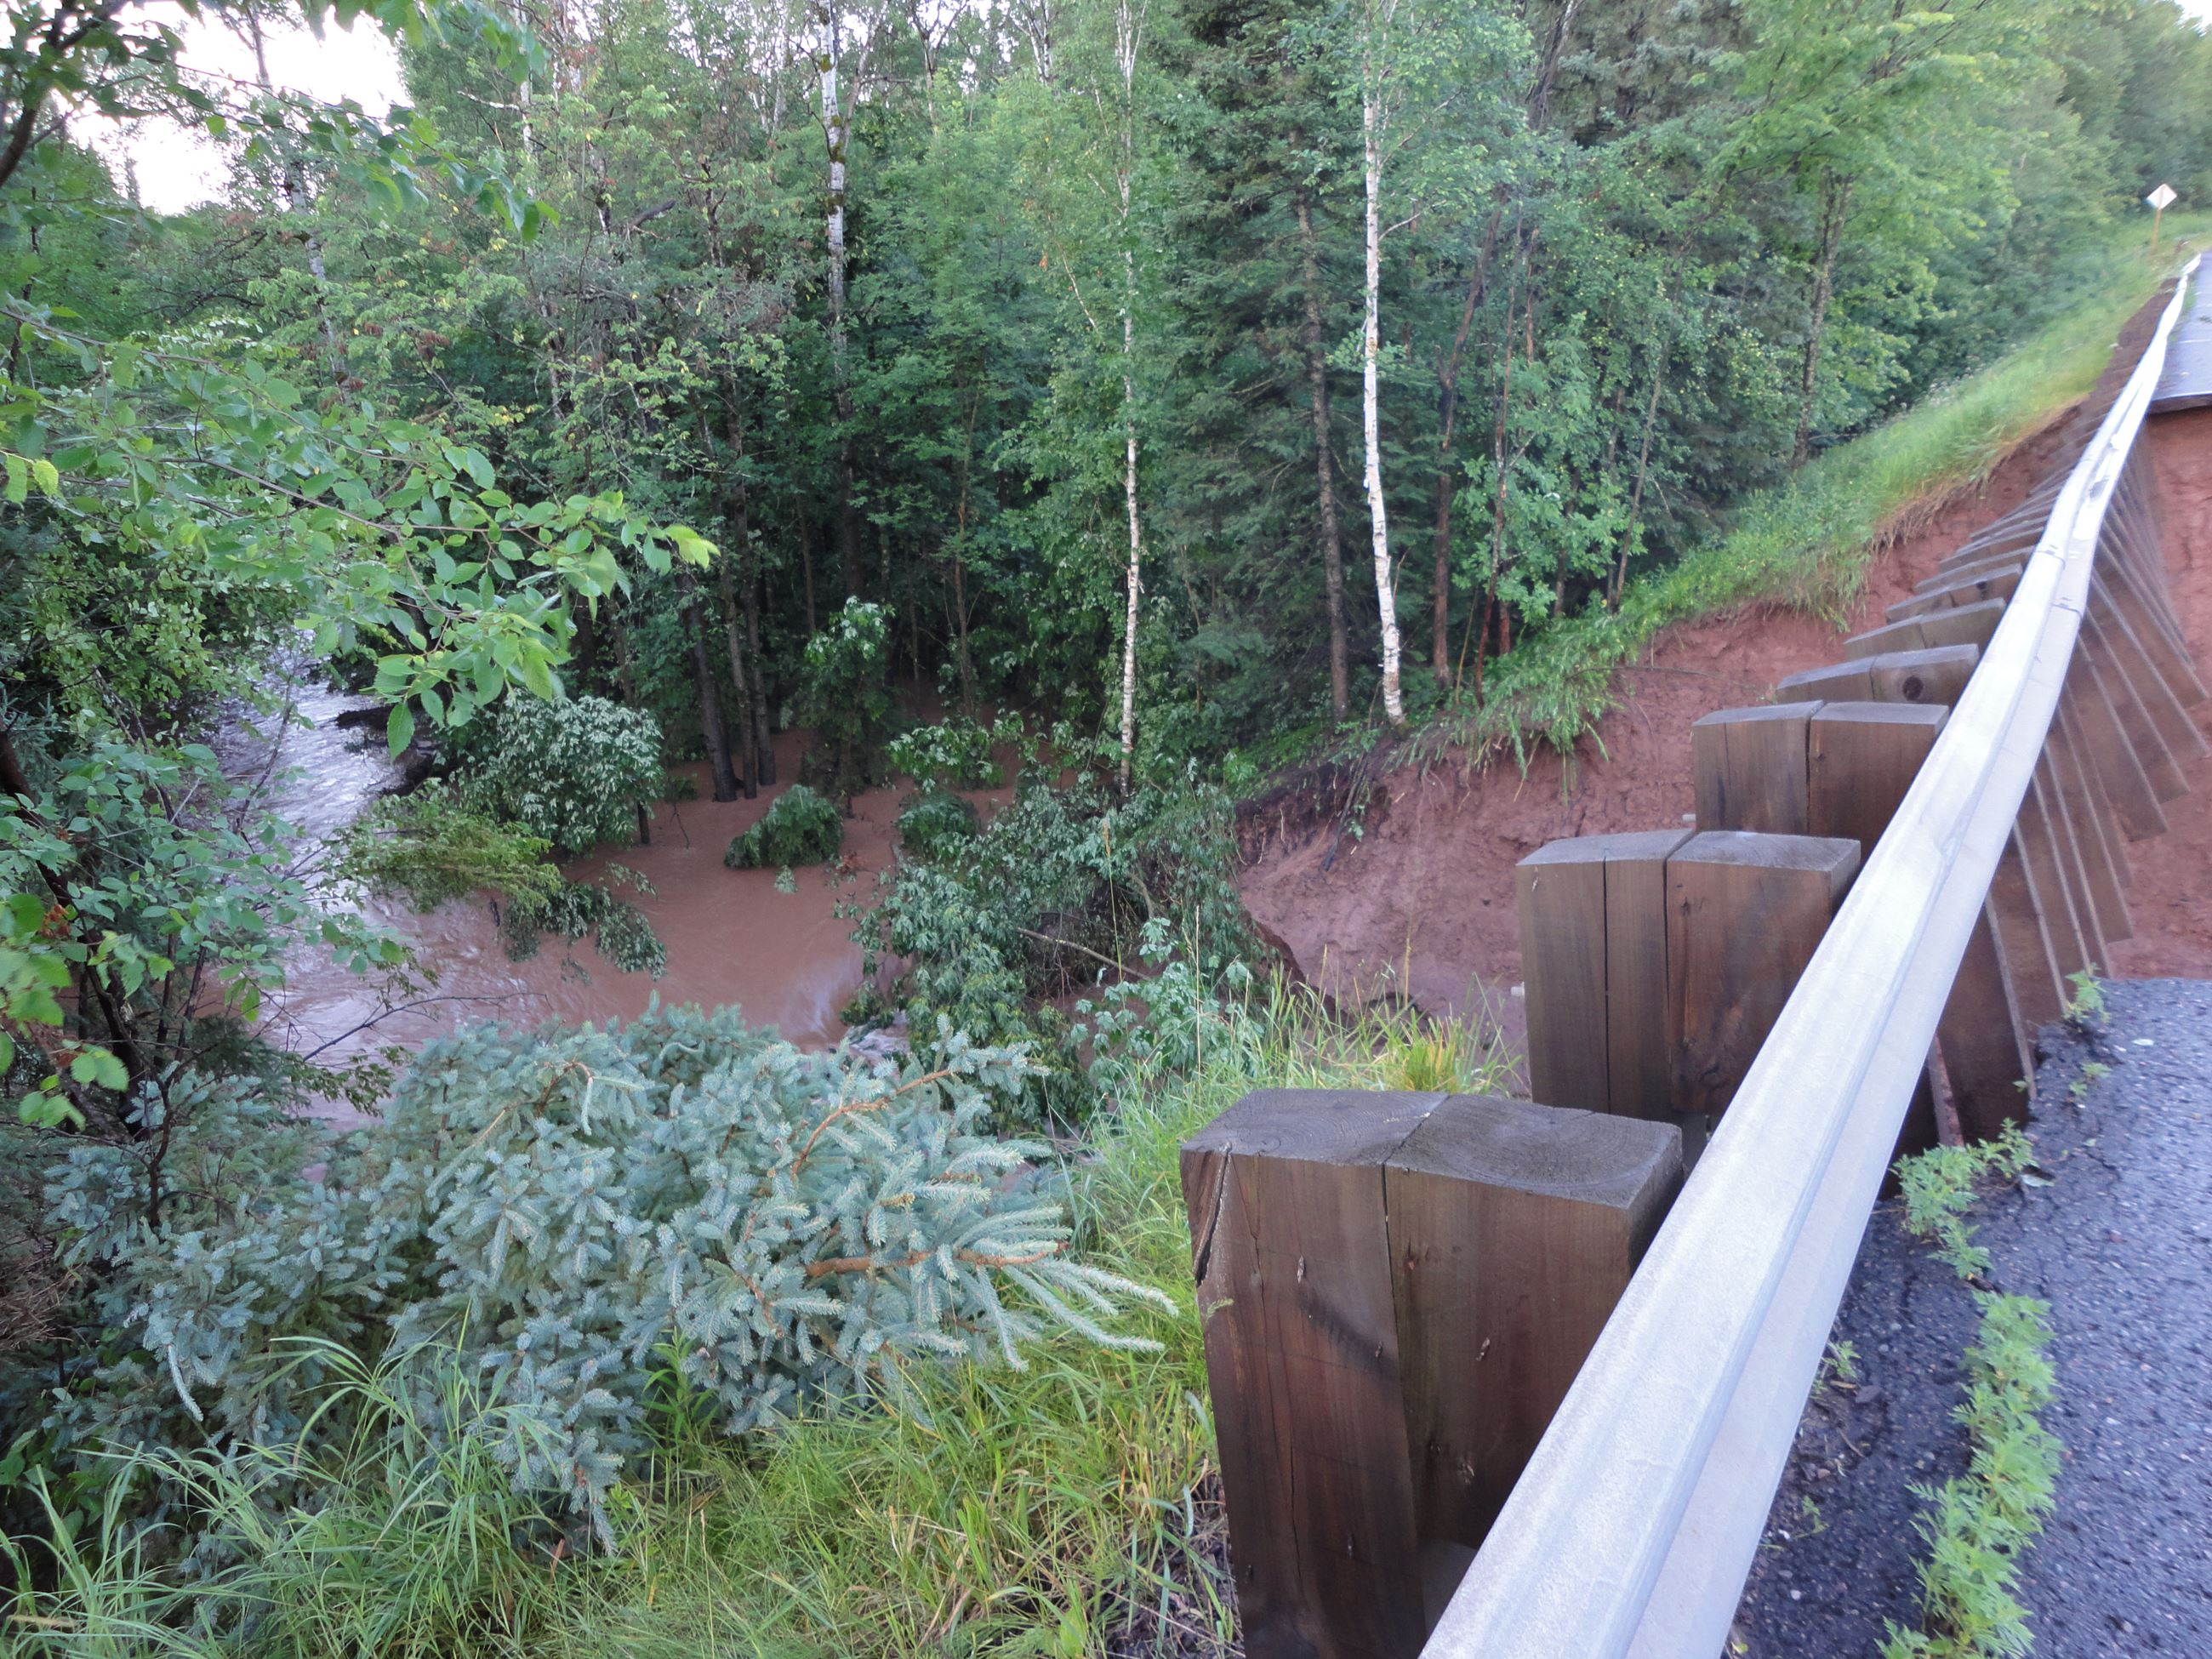 The 18 Mile Creek highway cut is at least 30' deep.